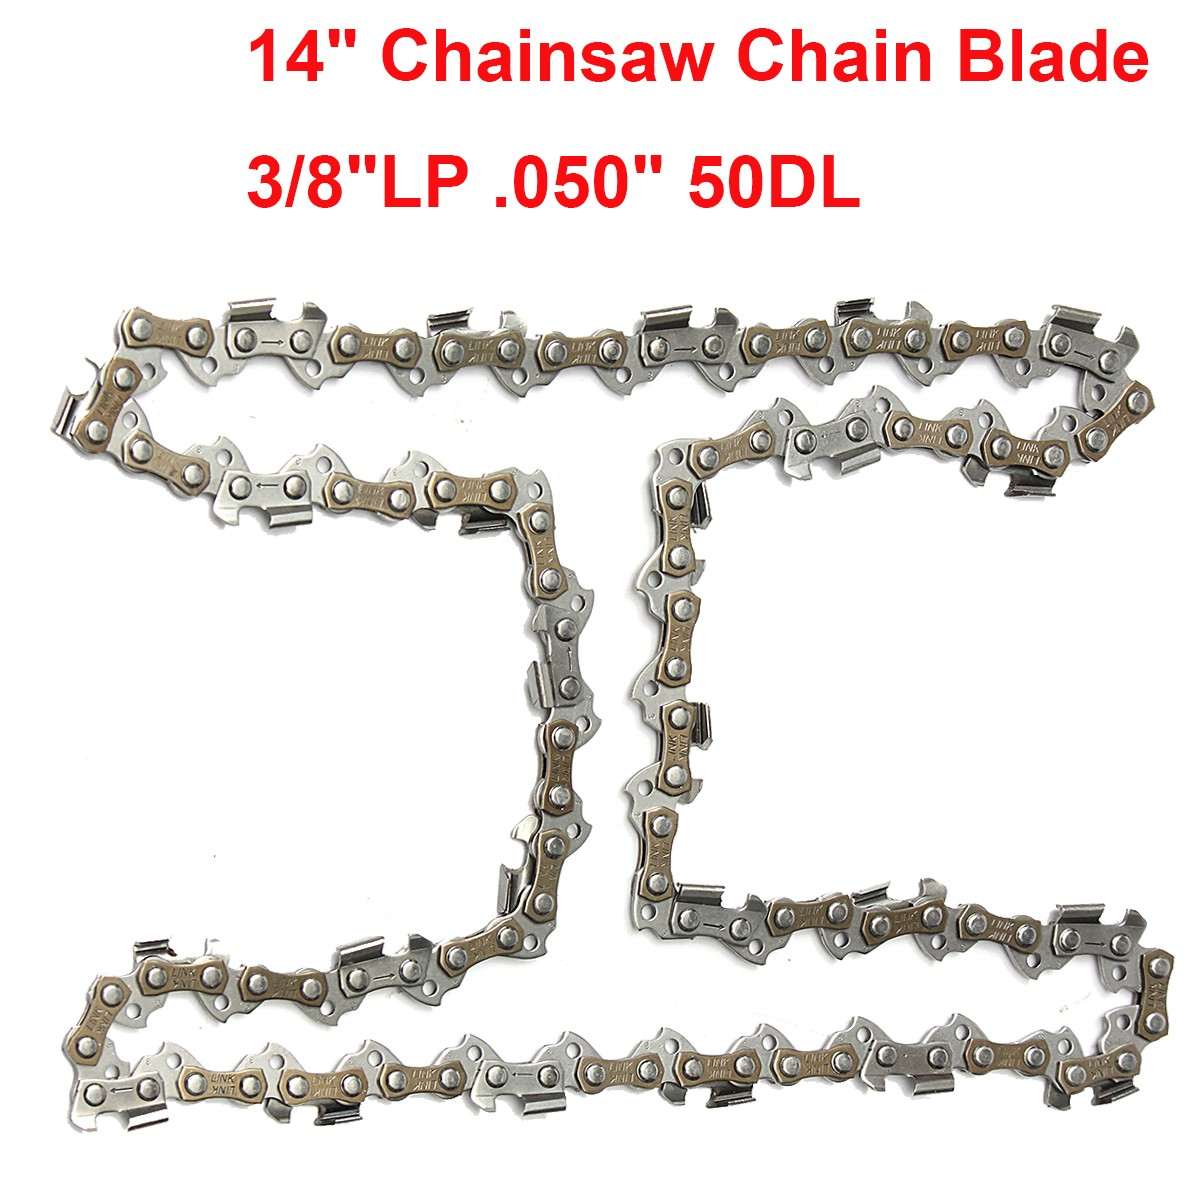 14 Chainsaw Chain Blade 3/8LP Sharp Blade Quickly Cut Wood For Stihl 009 010 017 019 023 MS170 MS180 50 Drive Pitch: 3/8 цепь stihl 63 pmc3 picco 55 3 8 1 3 16